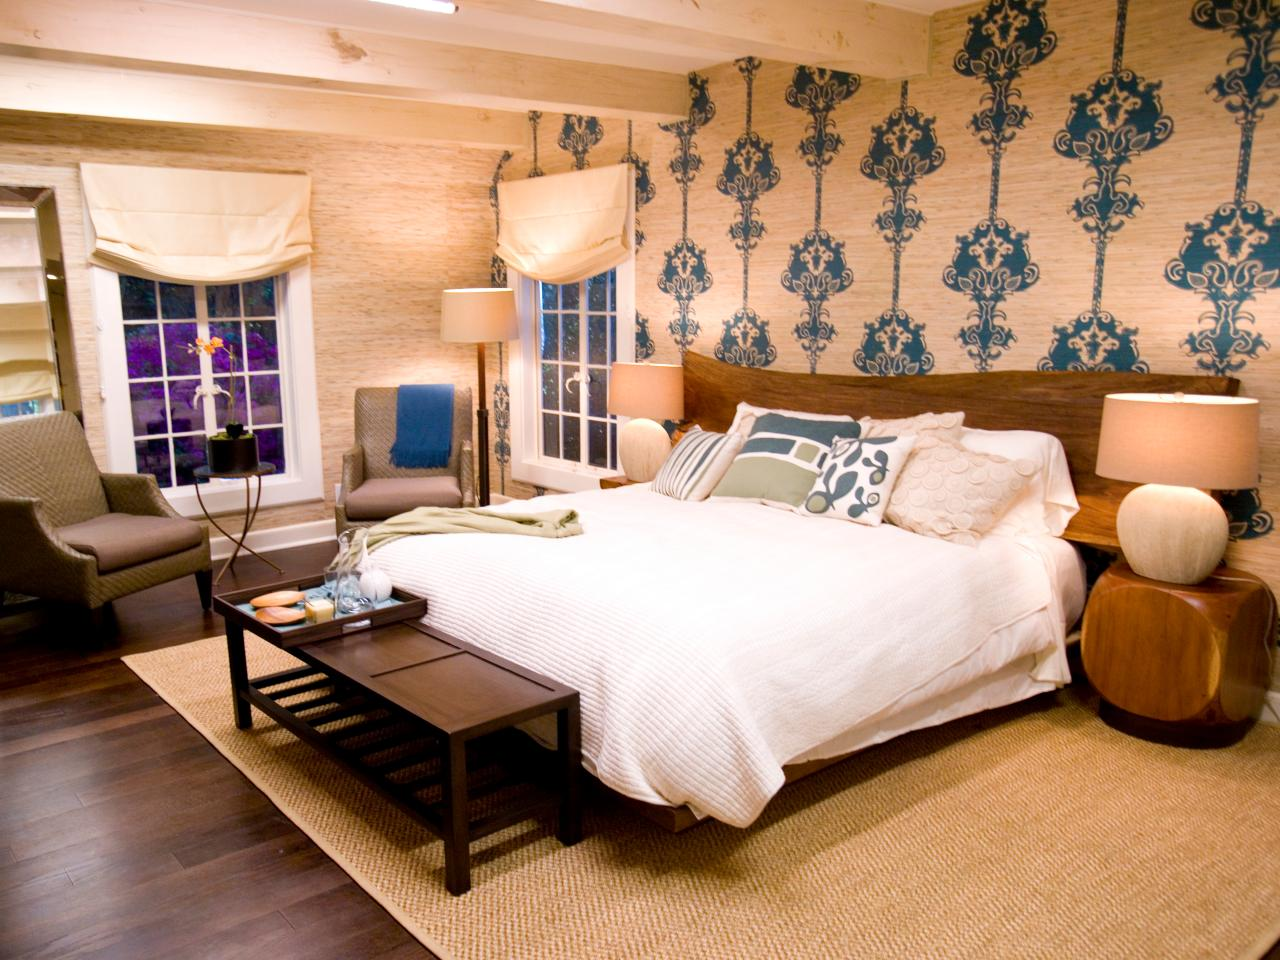 Bedroom Furniture Styles bedroom 101: top 10 design styles | hgtv